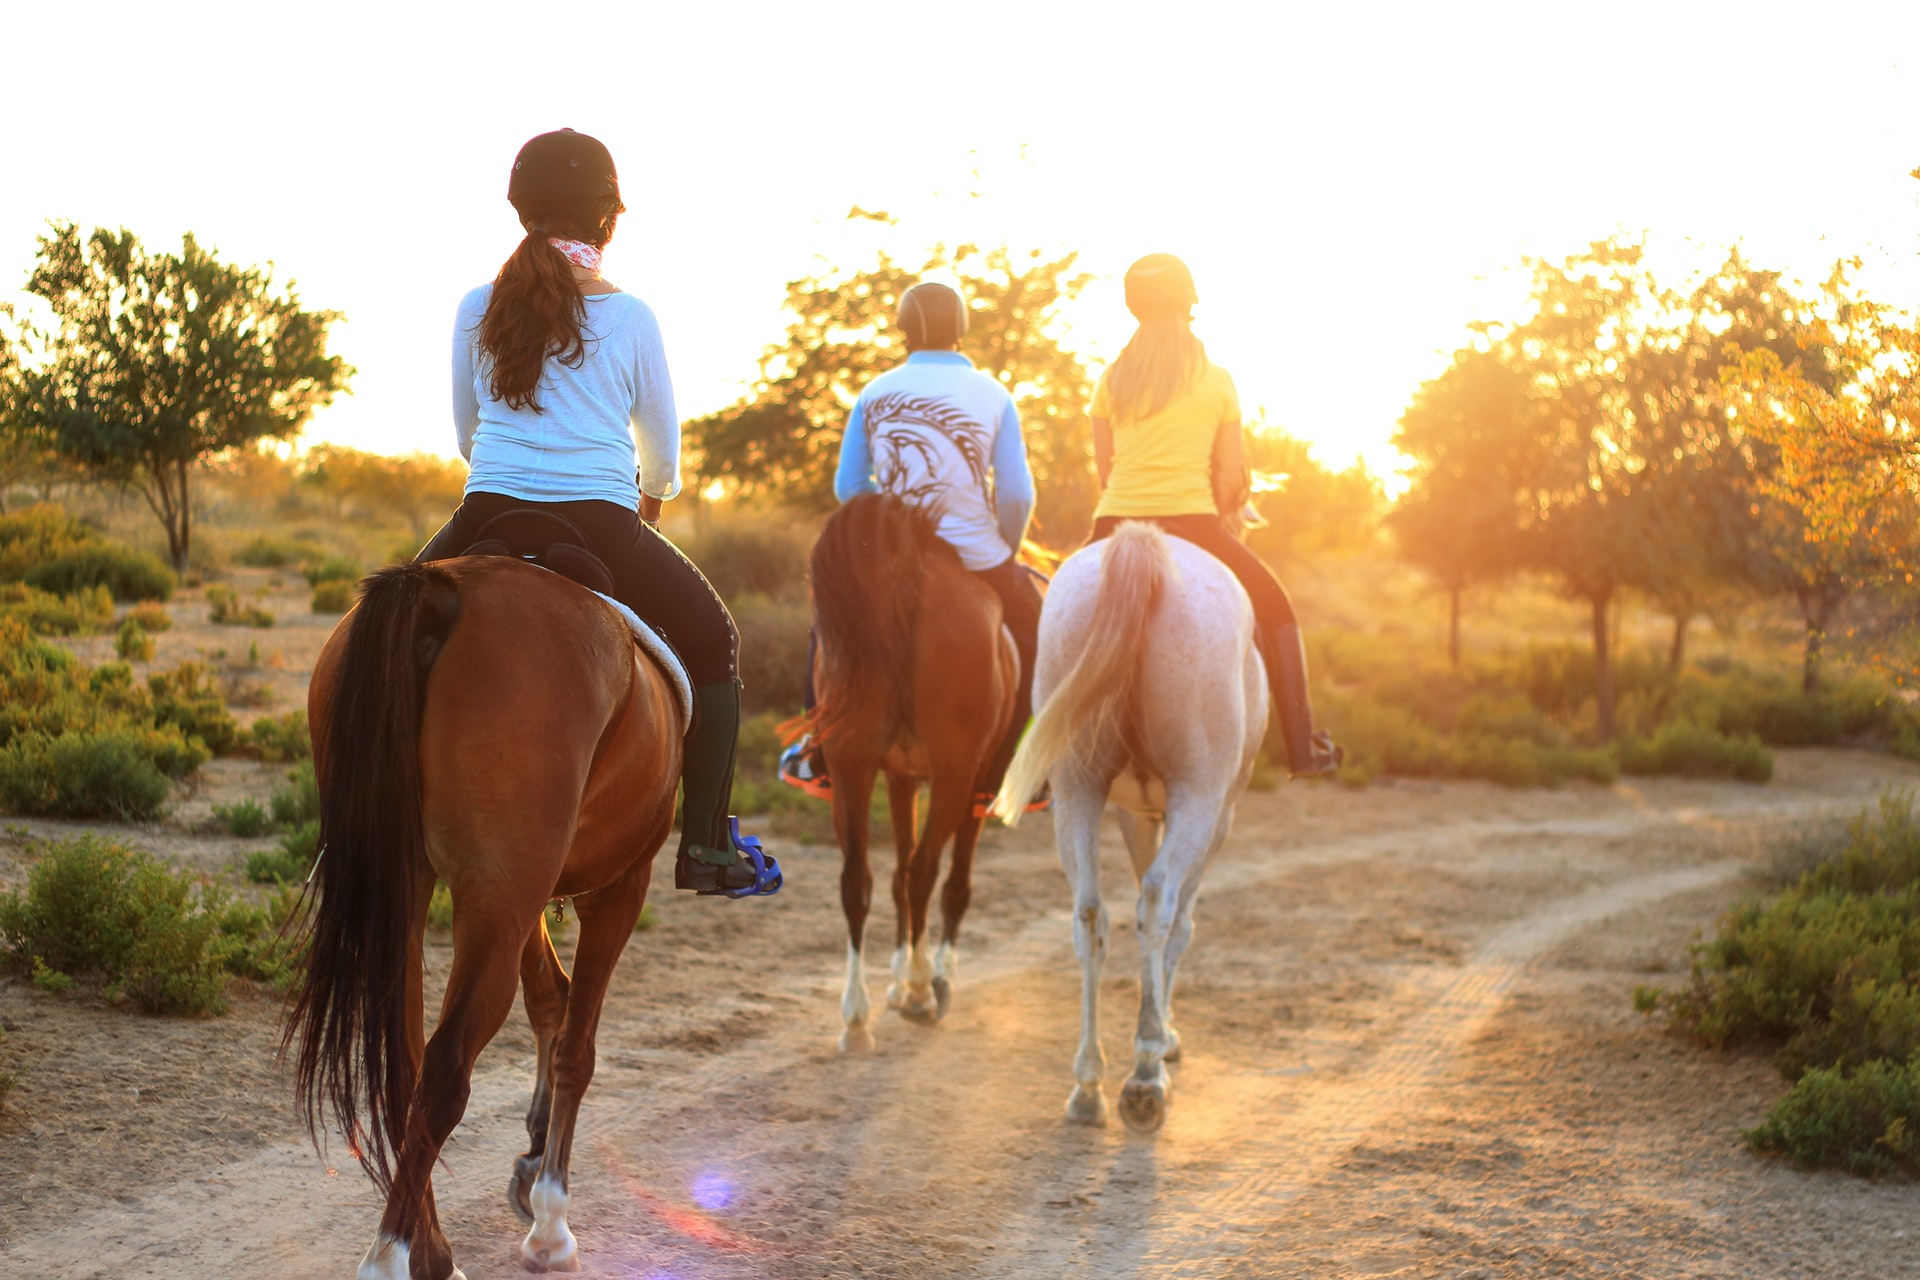 Equine-assisted-therapy-substance-abuse-treatment-plum-creek-recovery-ranch-austin-texas